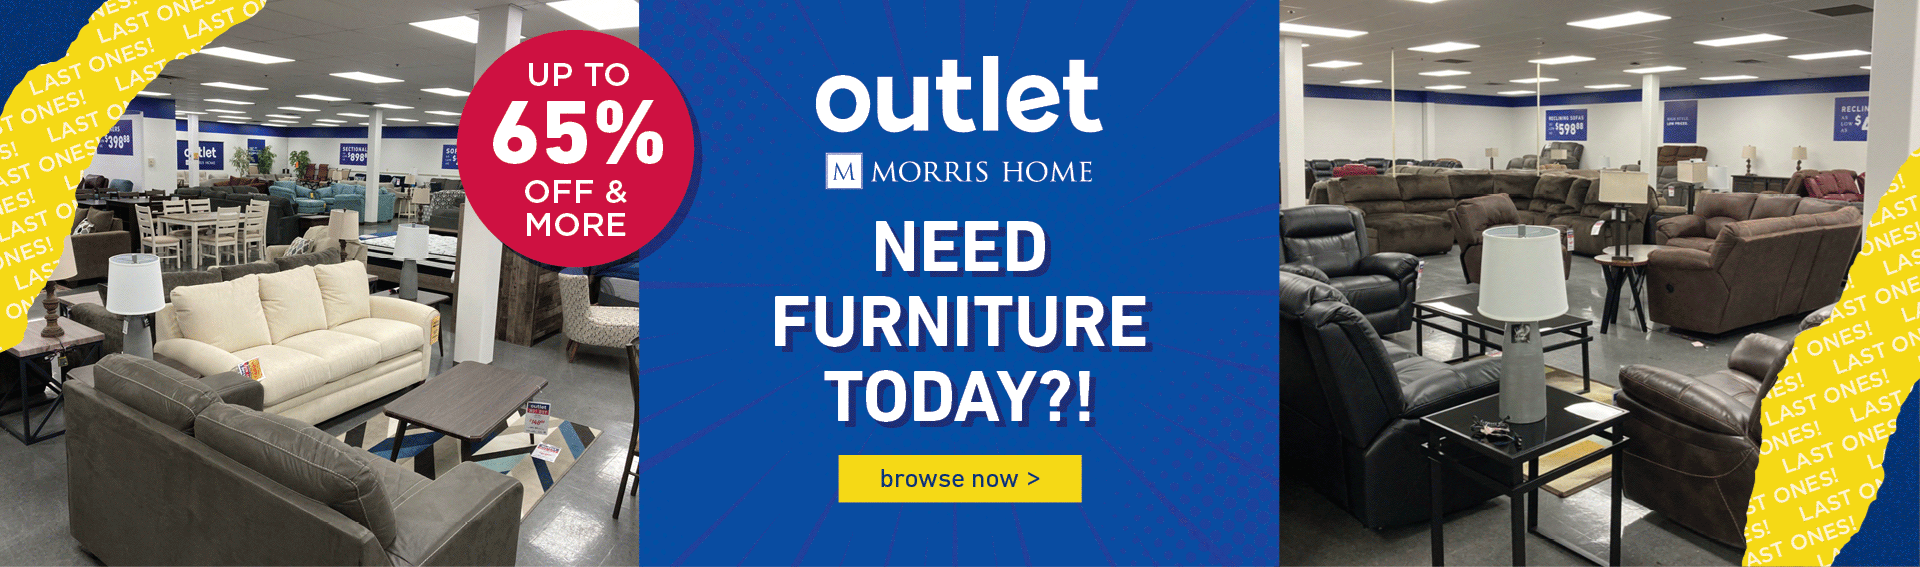 Get Furniture Today